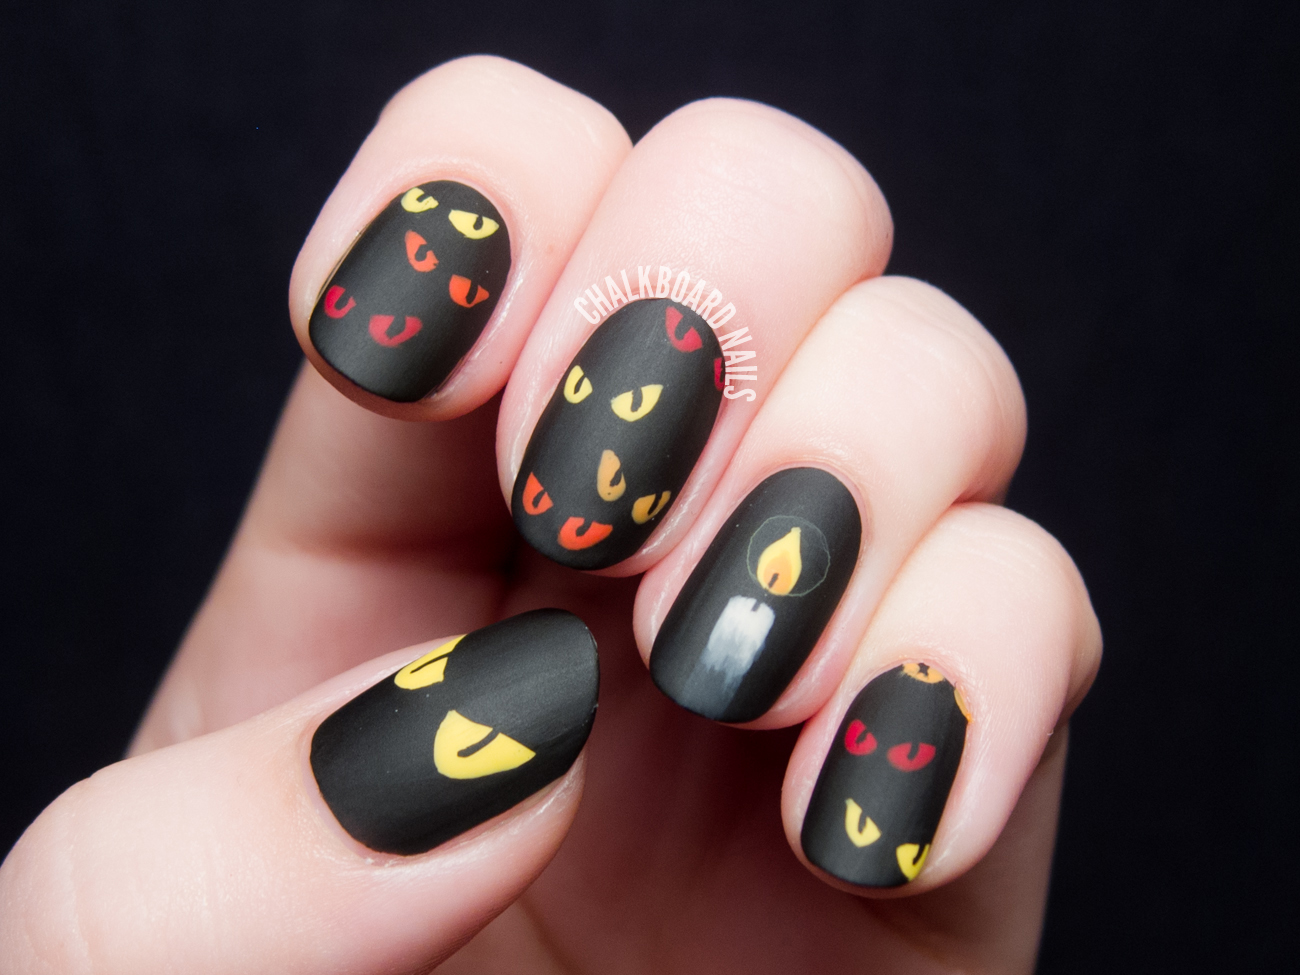 Spooky eyes nail art by @chalkboardnails